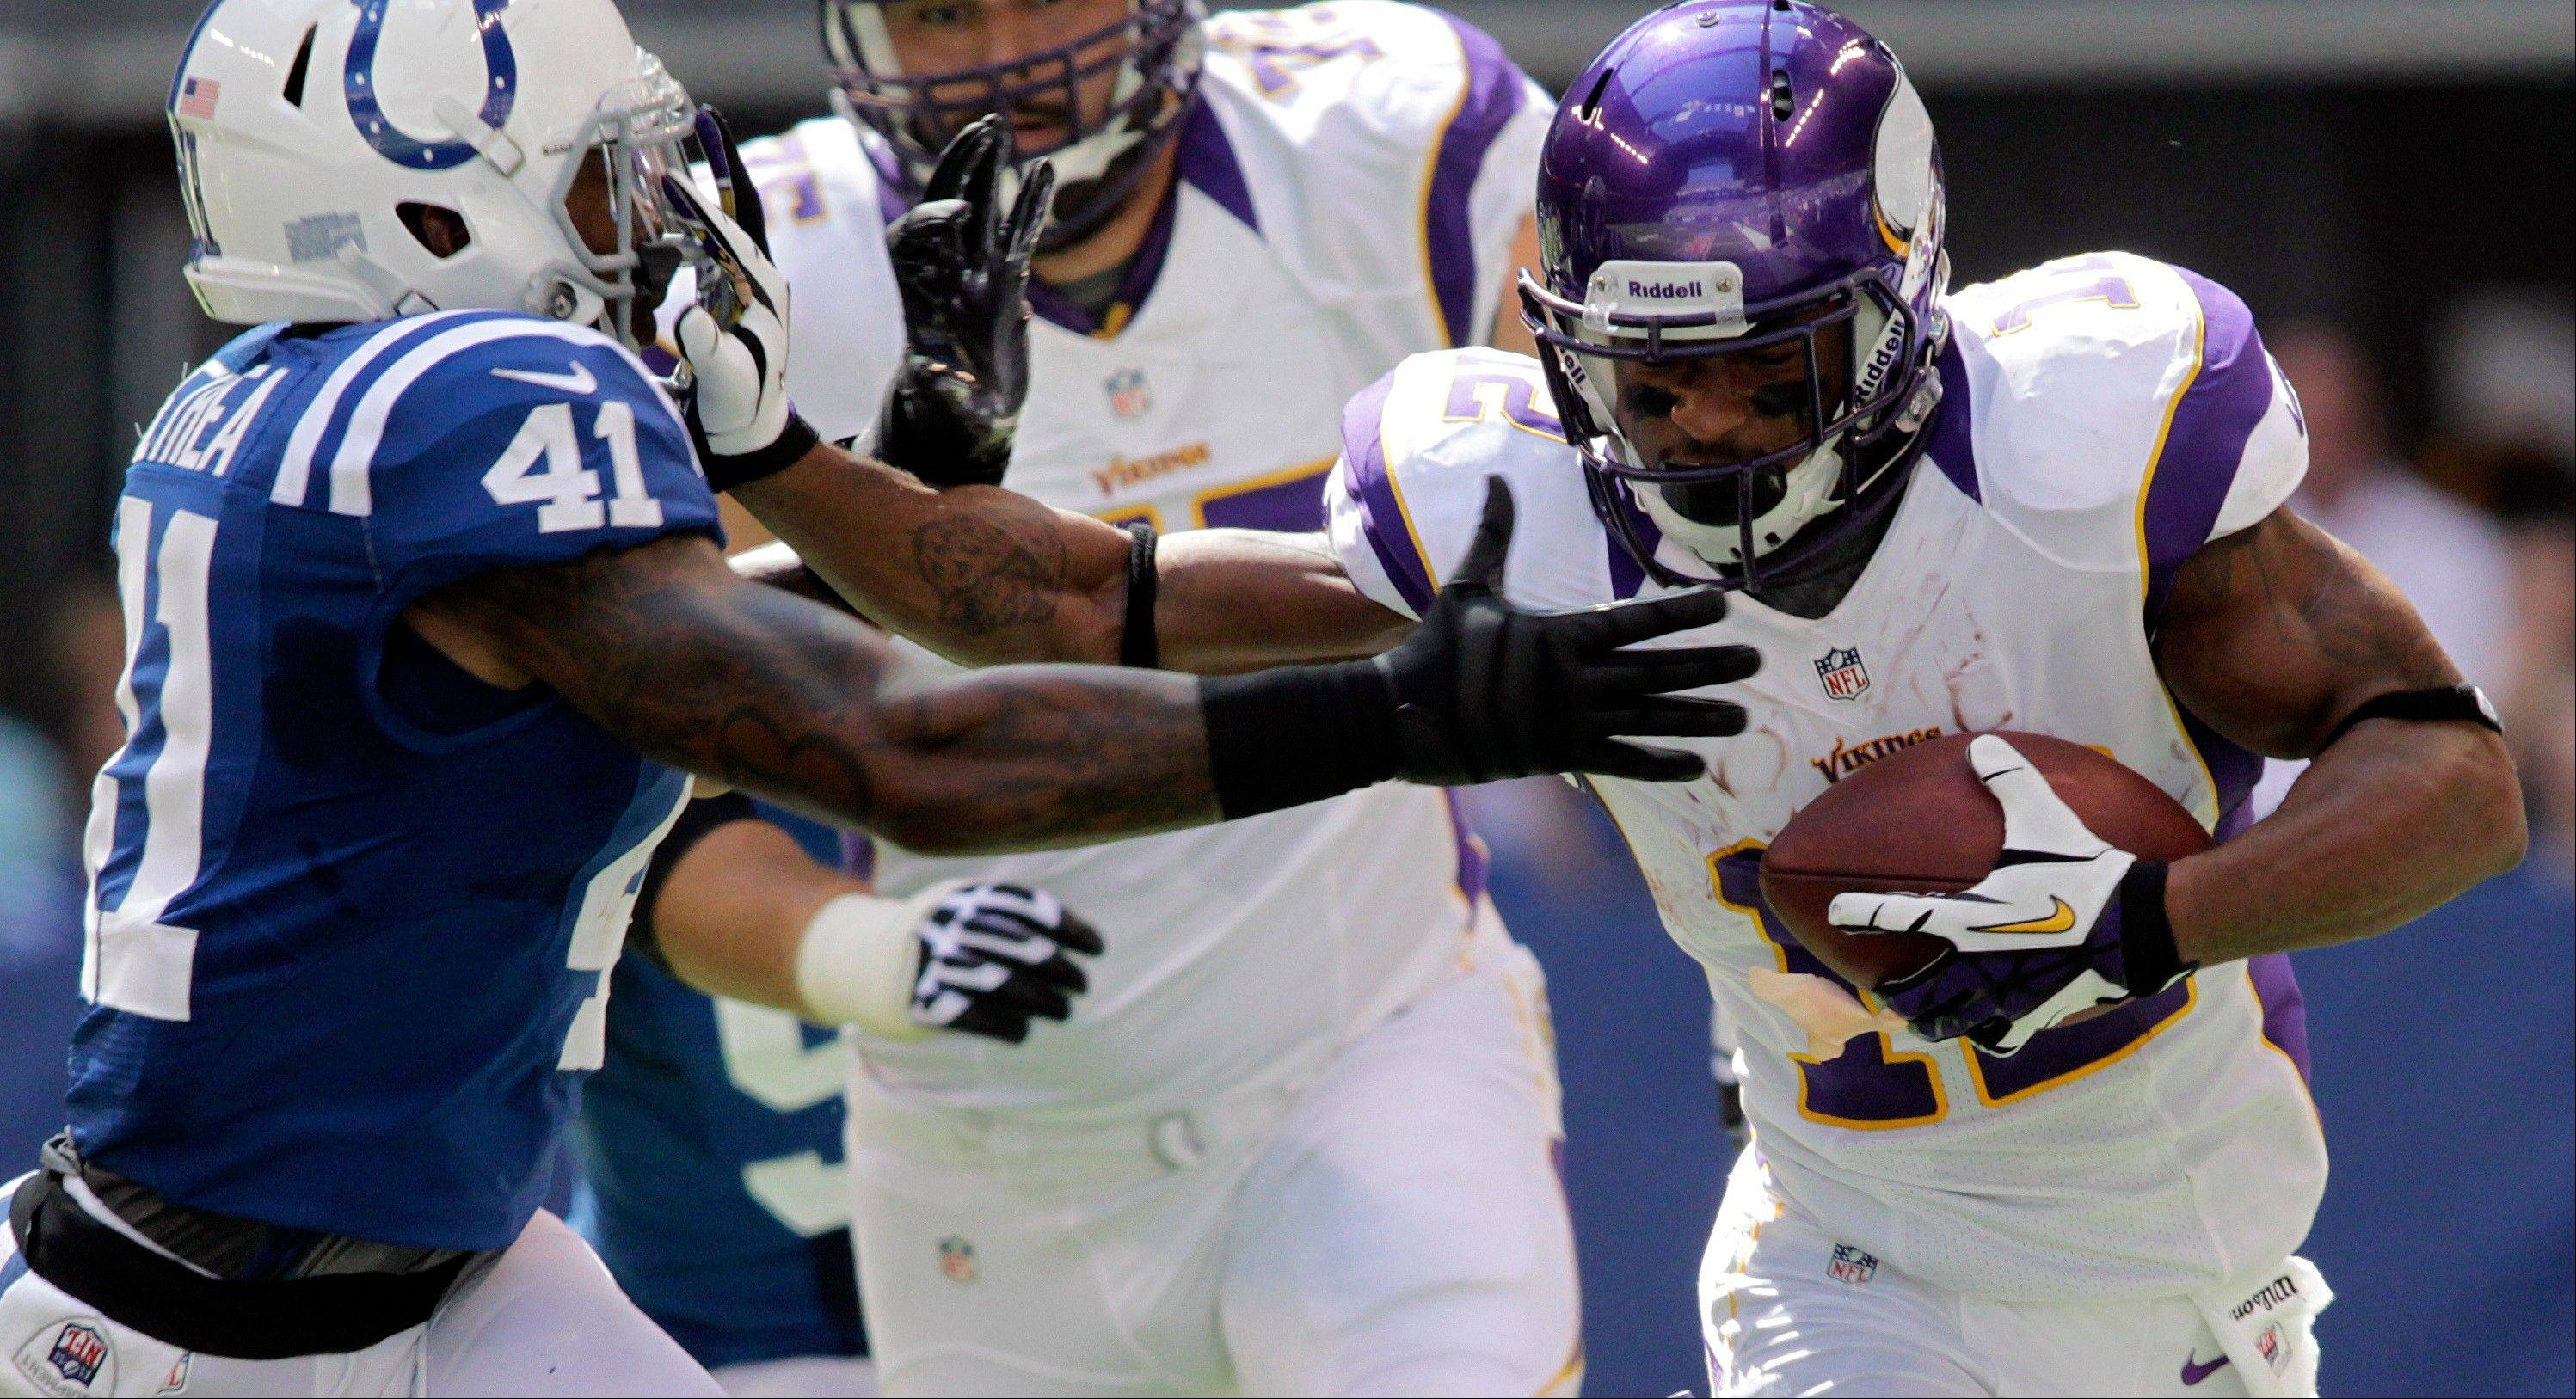 Minnesota Vikings wide receiver Percy Harvin has been ruled out for Sunday�s game against the Bears.